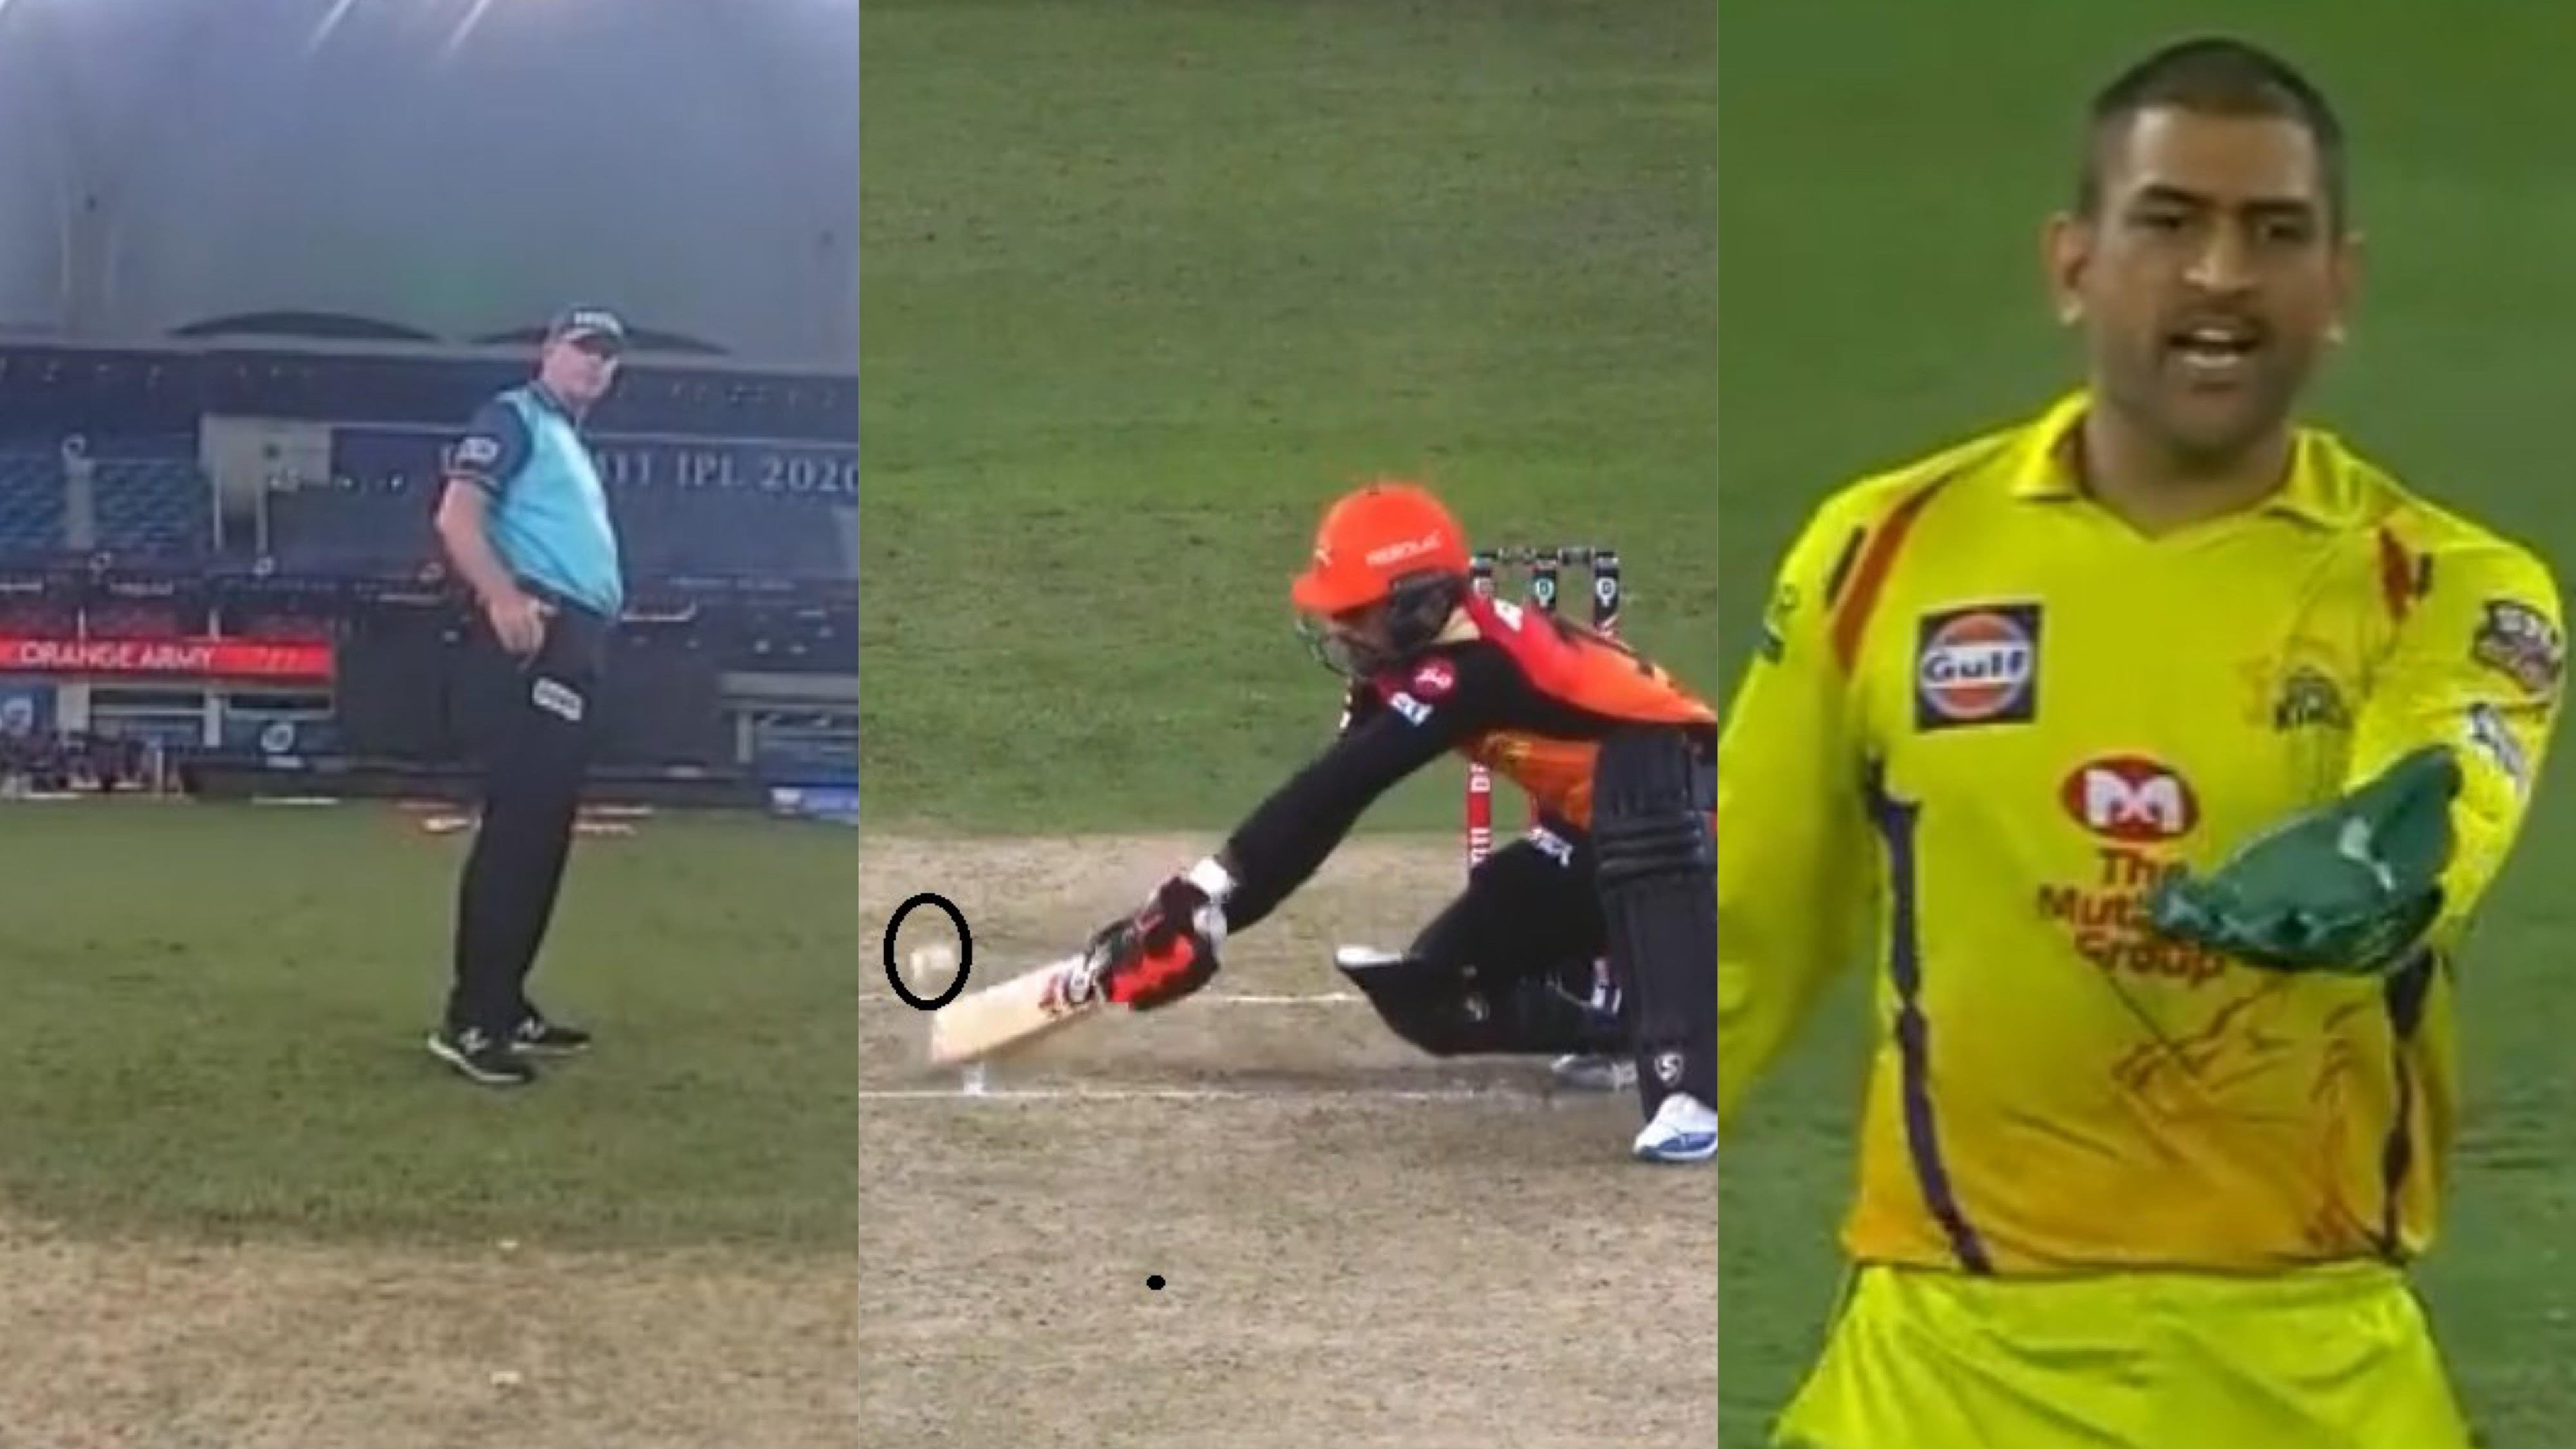 IPL 2020: WATCH - Umpire Paul Reiffel doesn't call wide after angry reaction from MS Dhoni